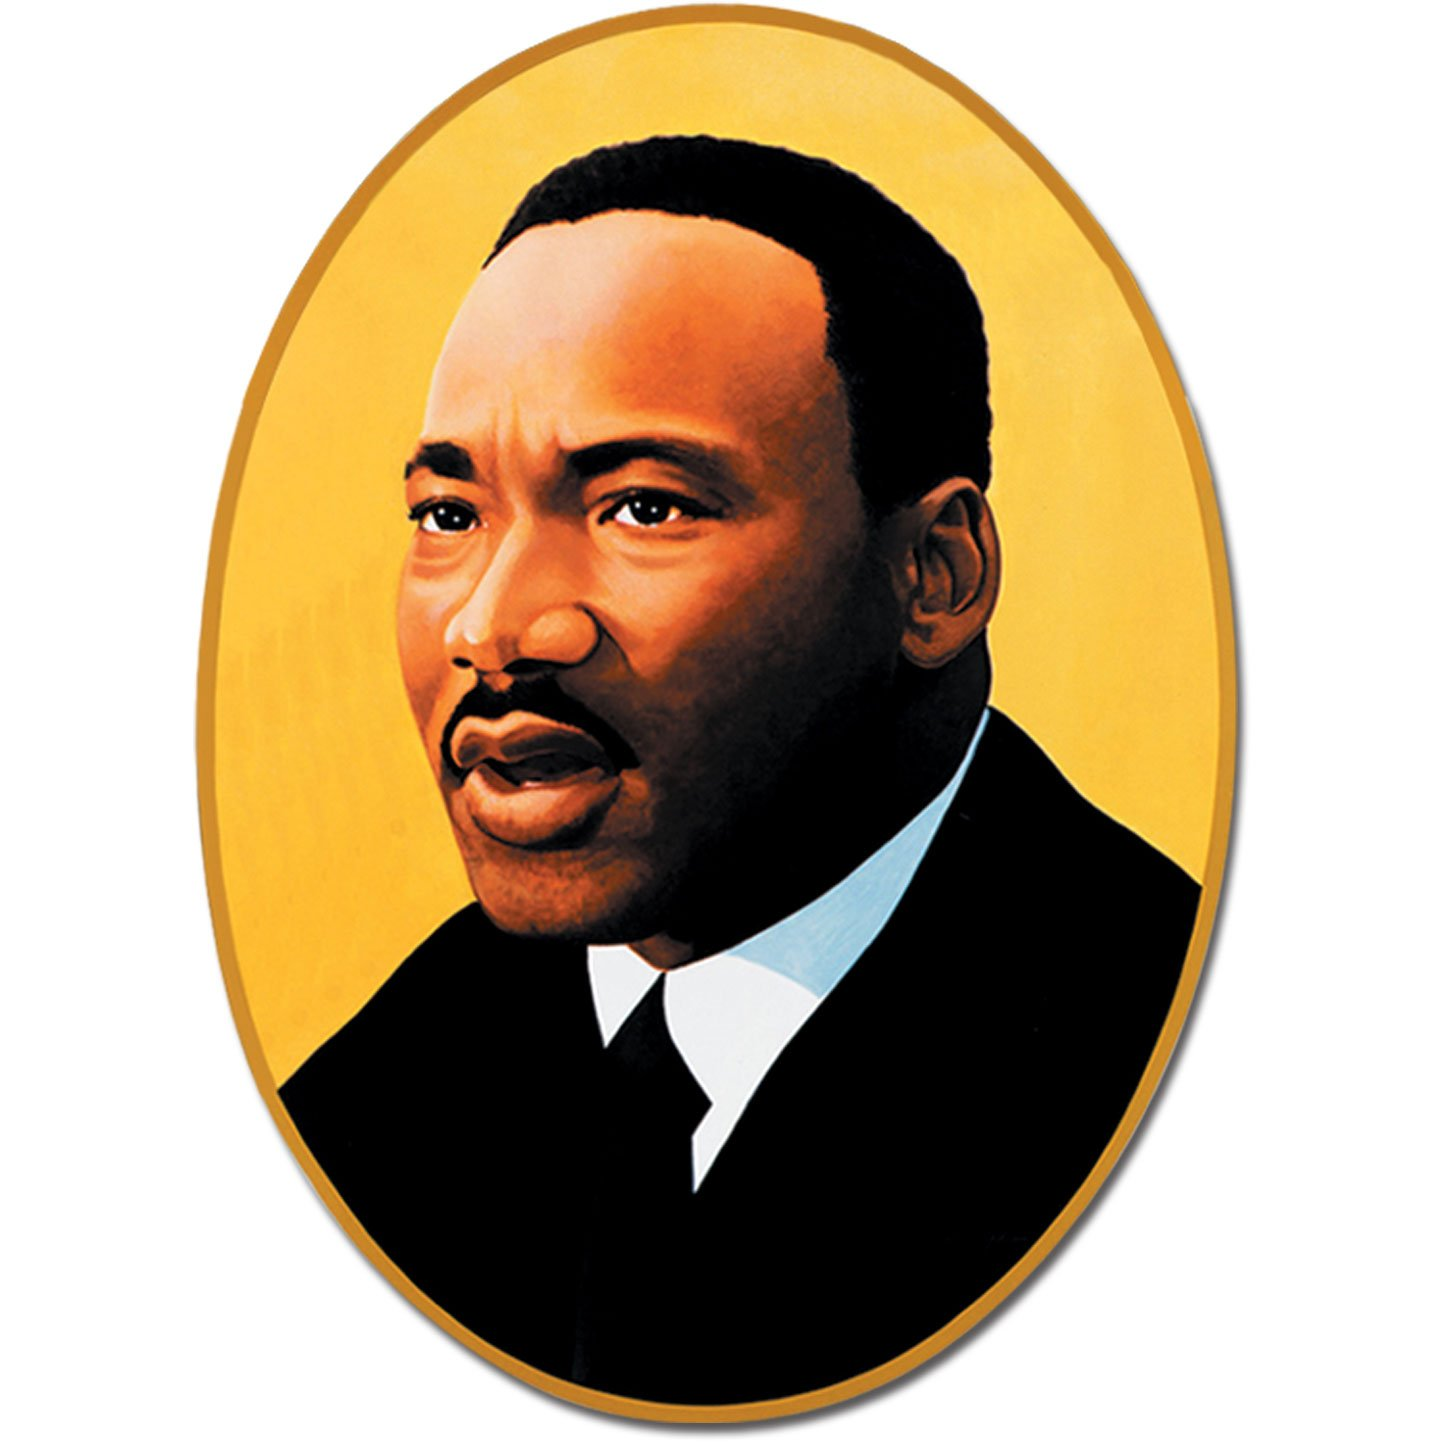 amazon com beistle 55843 martin luther king cutout 25 inch party rh amazon com martin luther king jr clip art free martin luther king jr clip art free